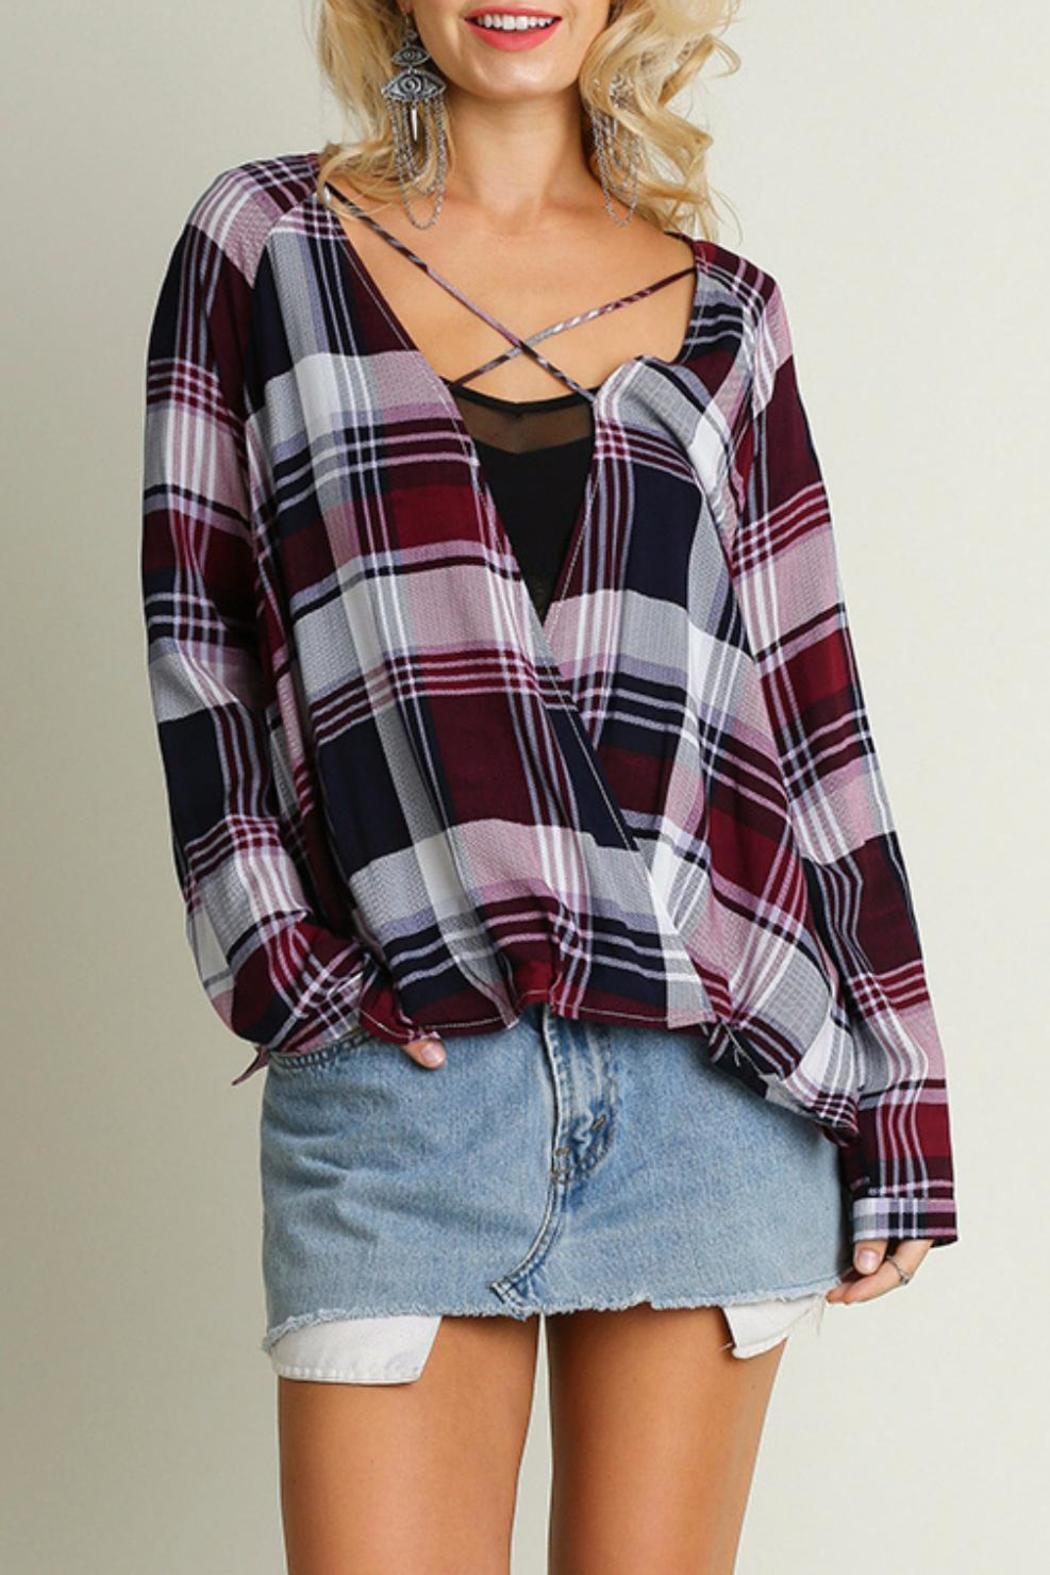 Umgee USA Crisscross Plaid Top - Main Image